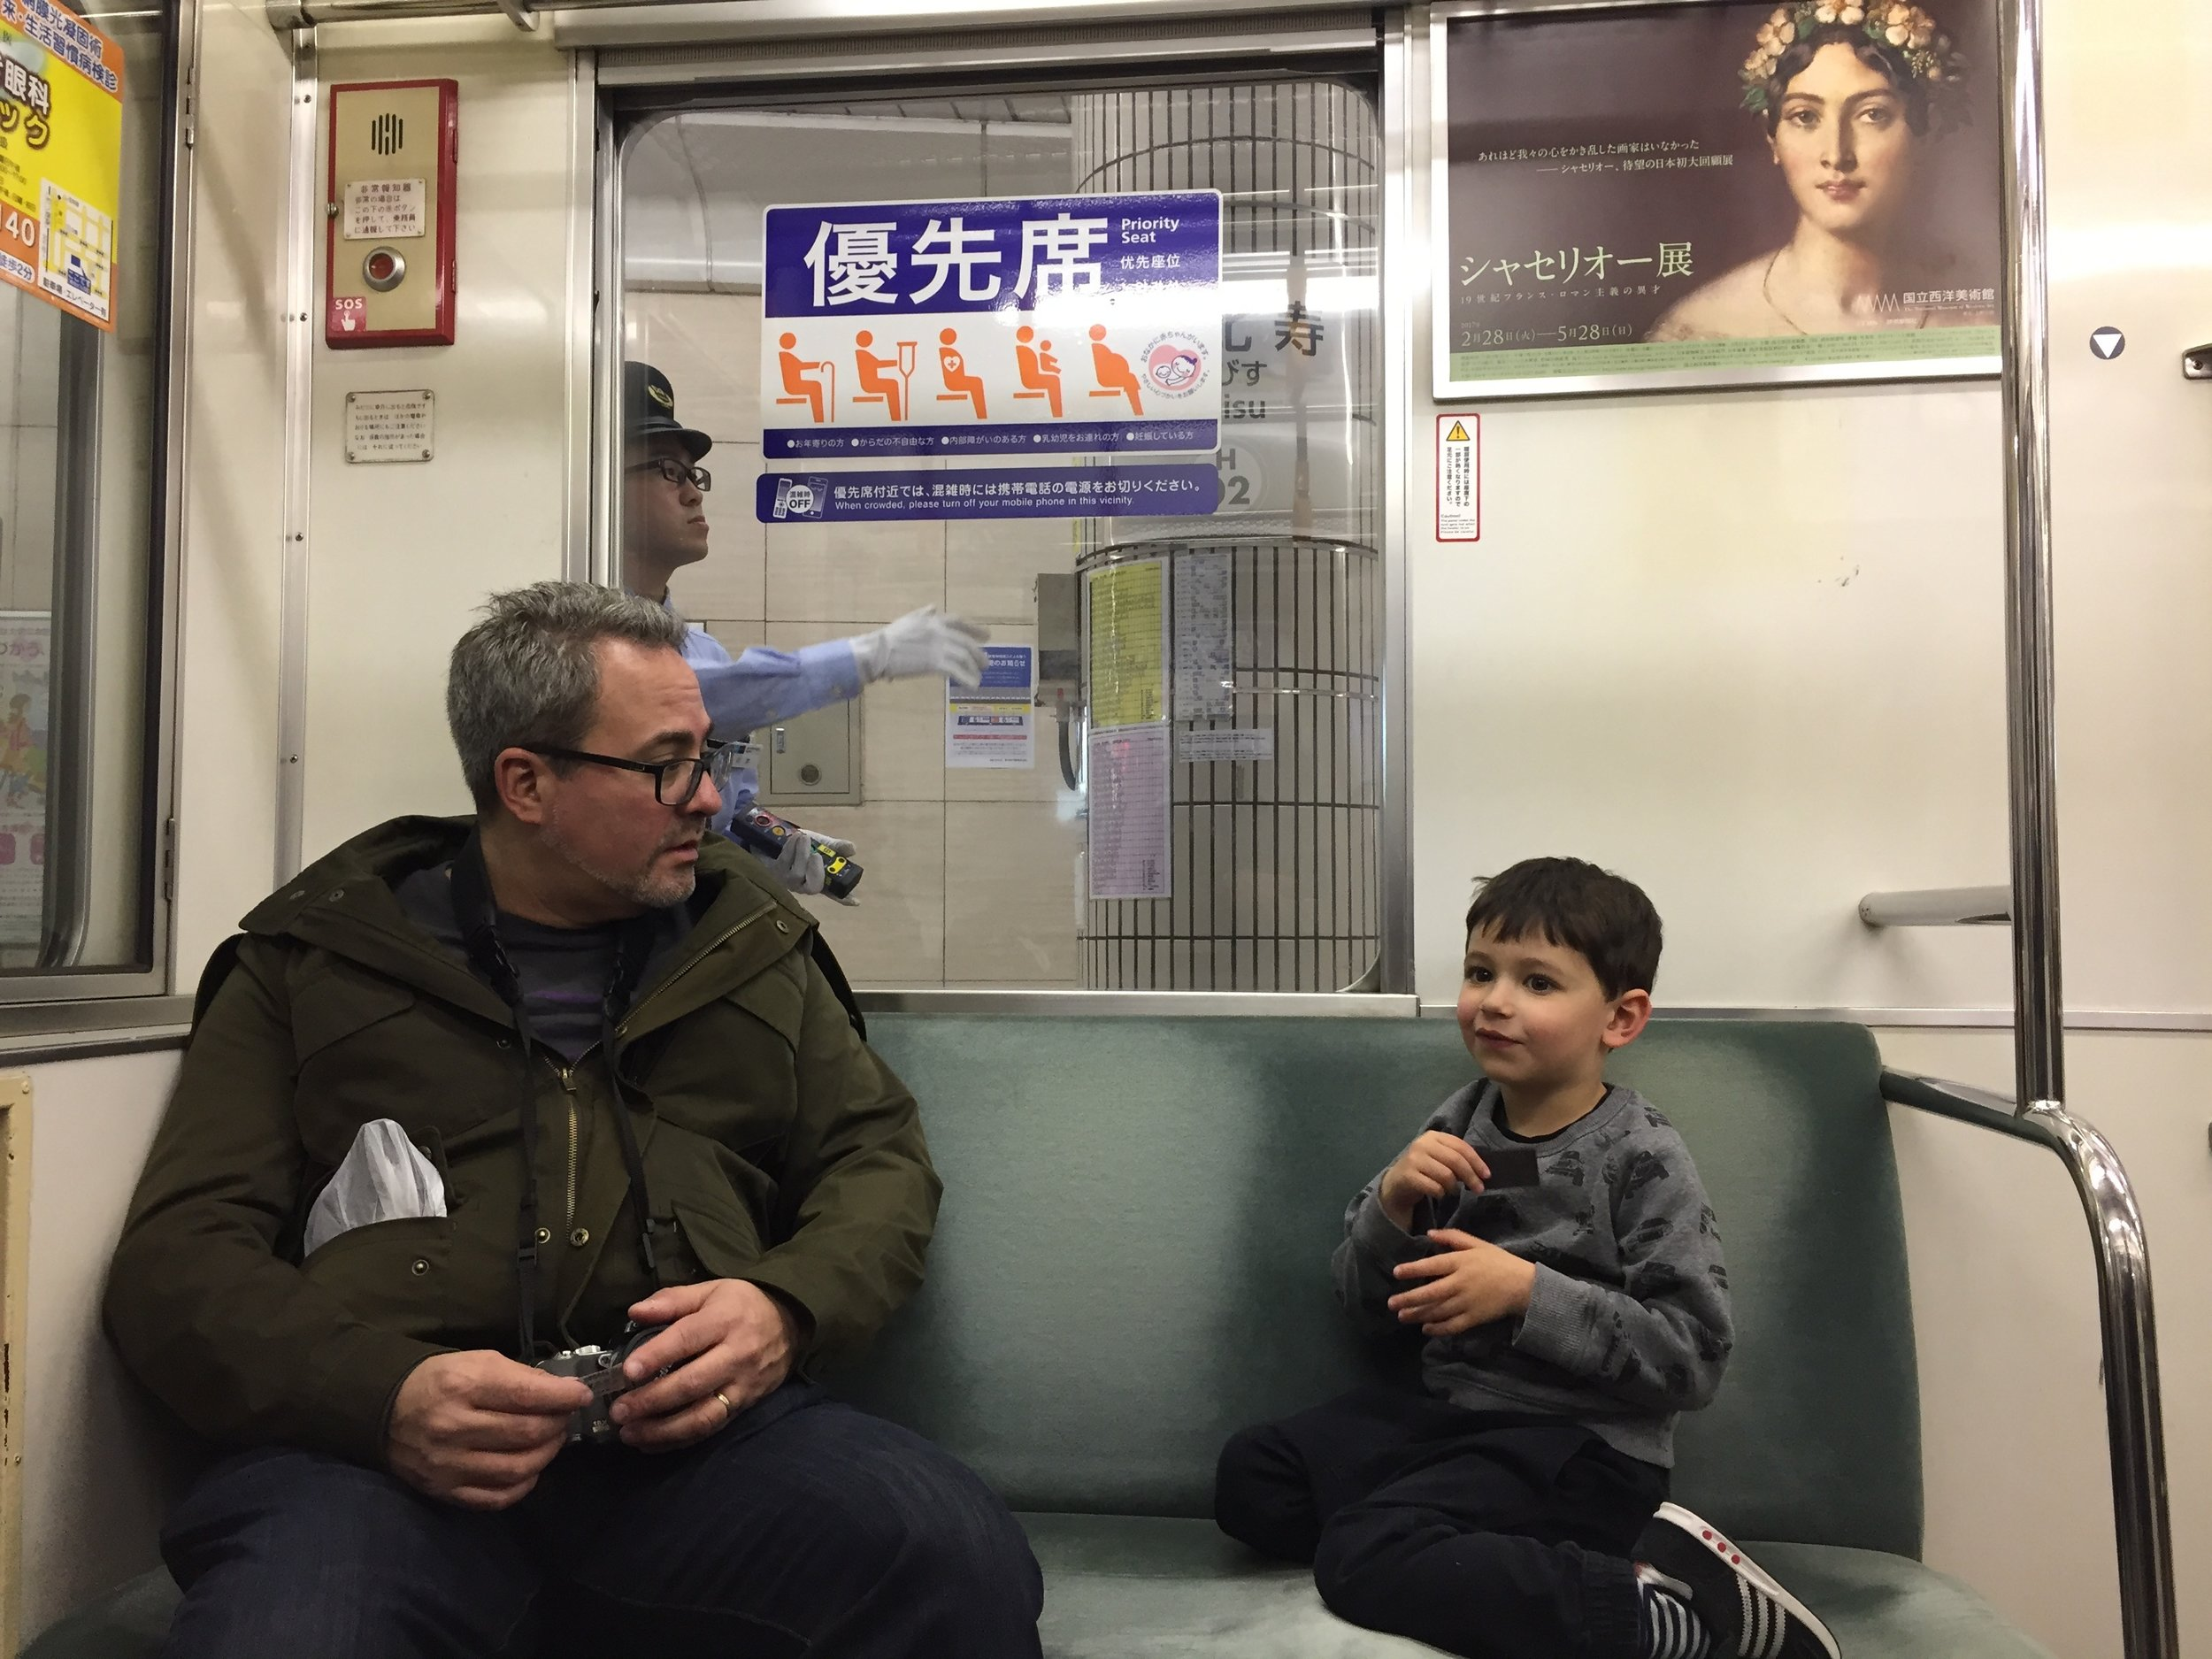 in the metro,ender tells uncle dave about the in-field fly rule so he doesn't embarrass us at the game